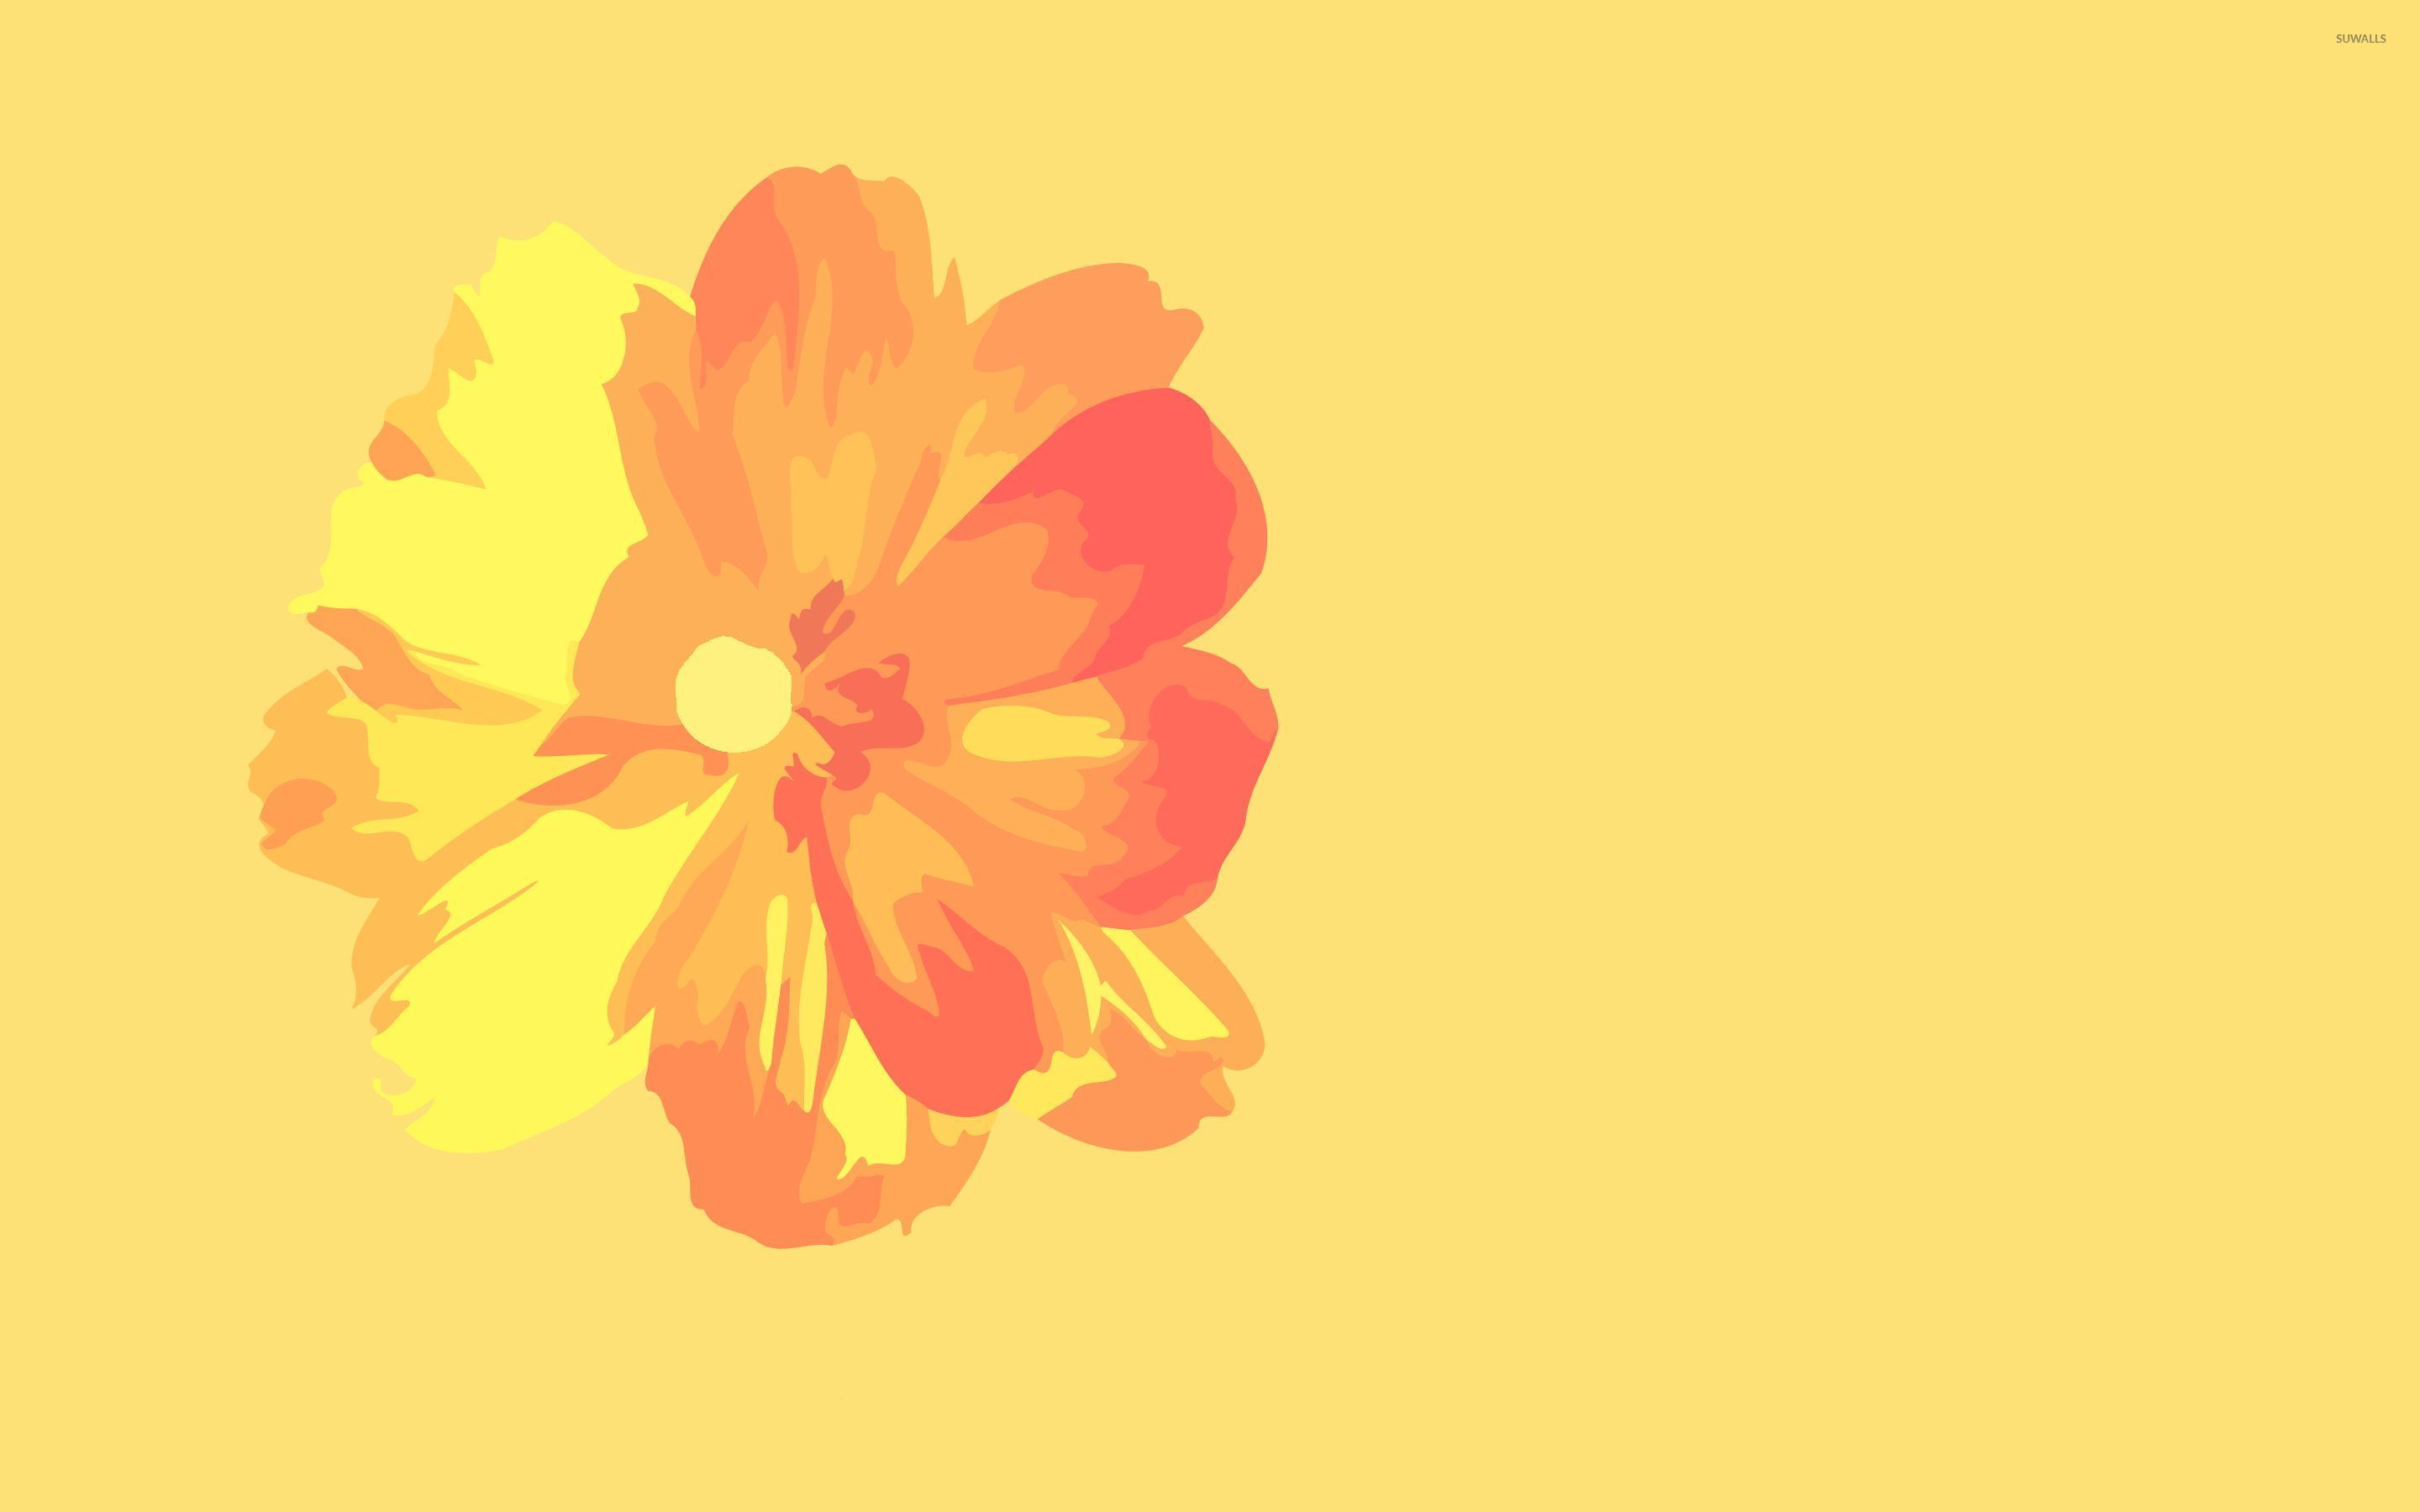 Orange Flowers wallpaper x